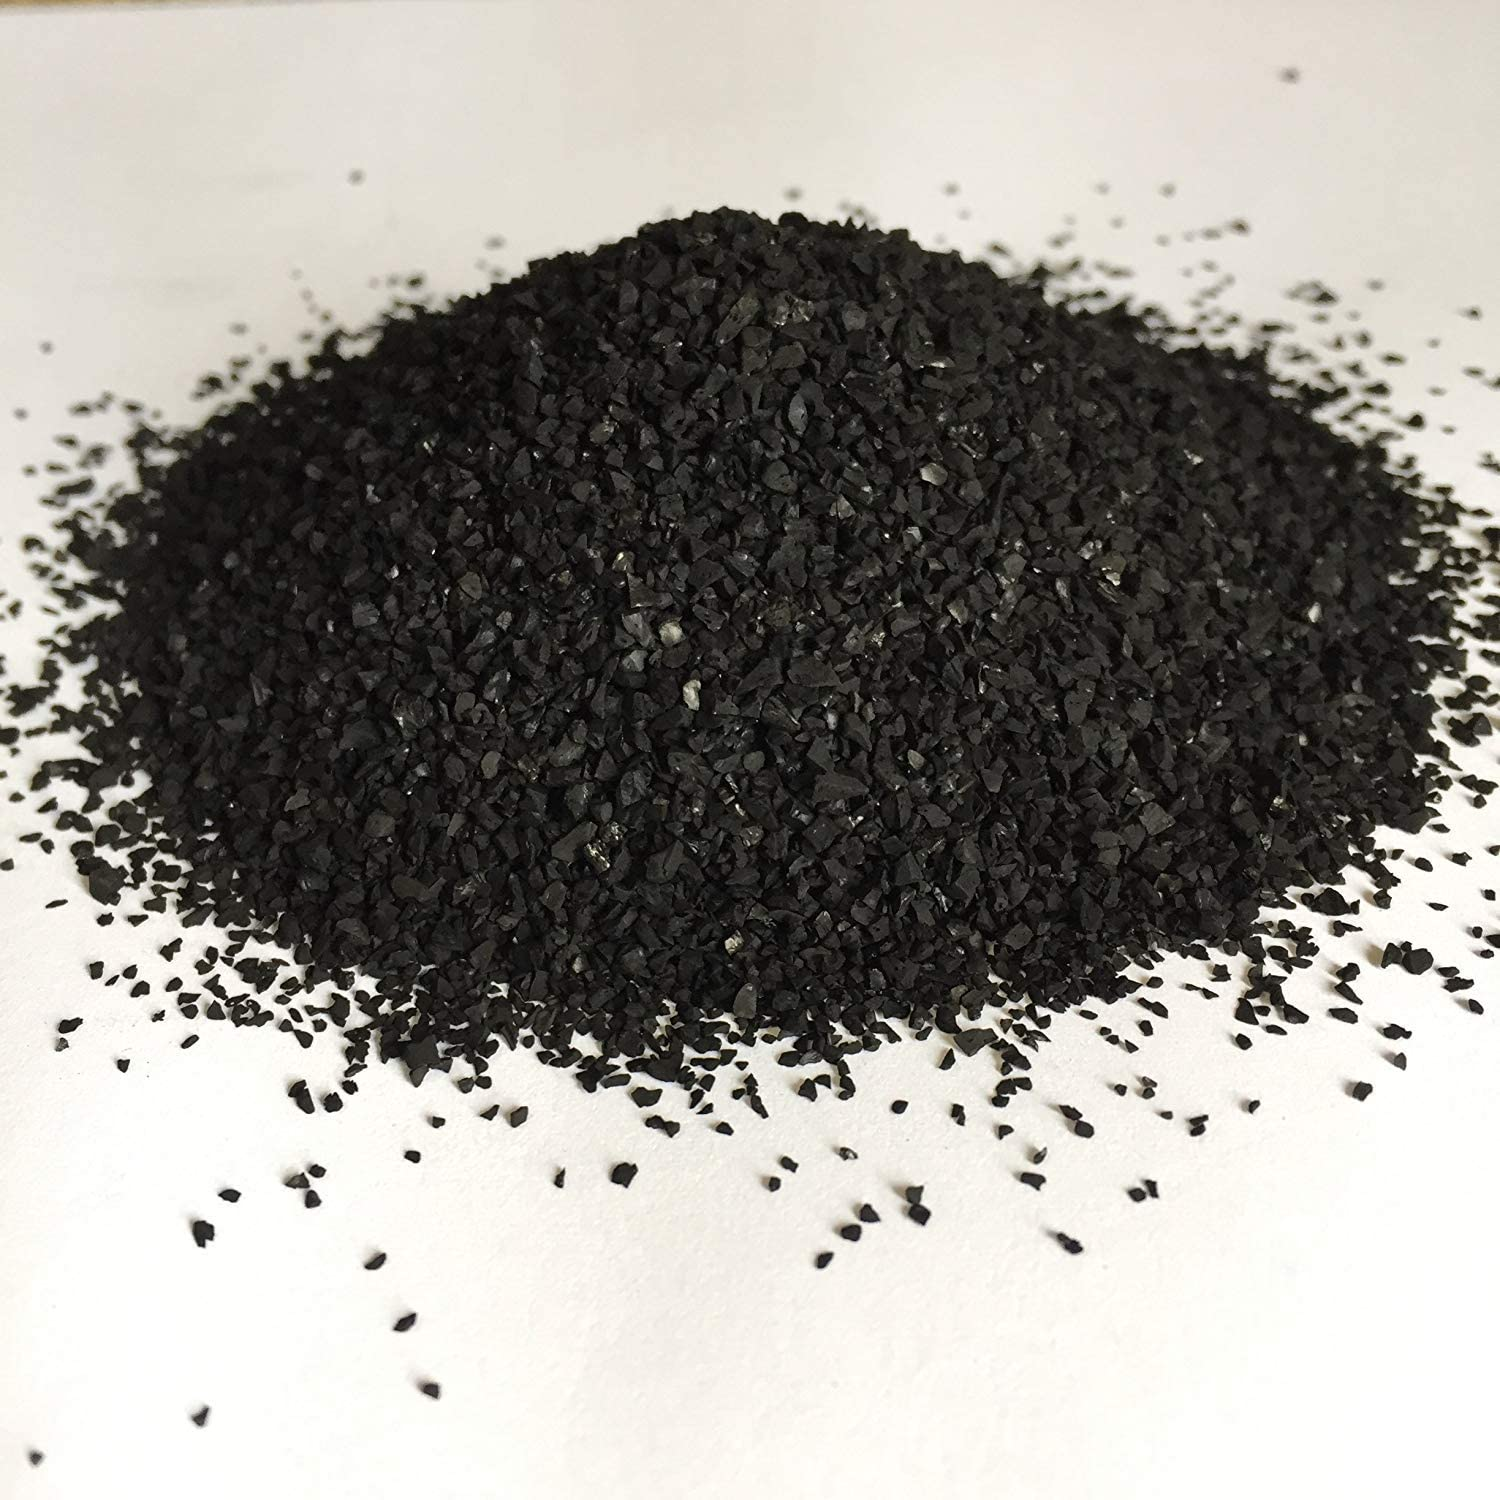 5 Lbs Bulk Water Filter/Air Filter Refill Coconut Shell Granular Activated Carbon Charcoal